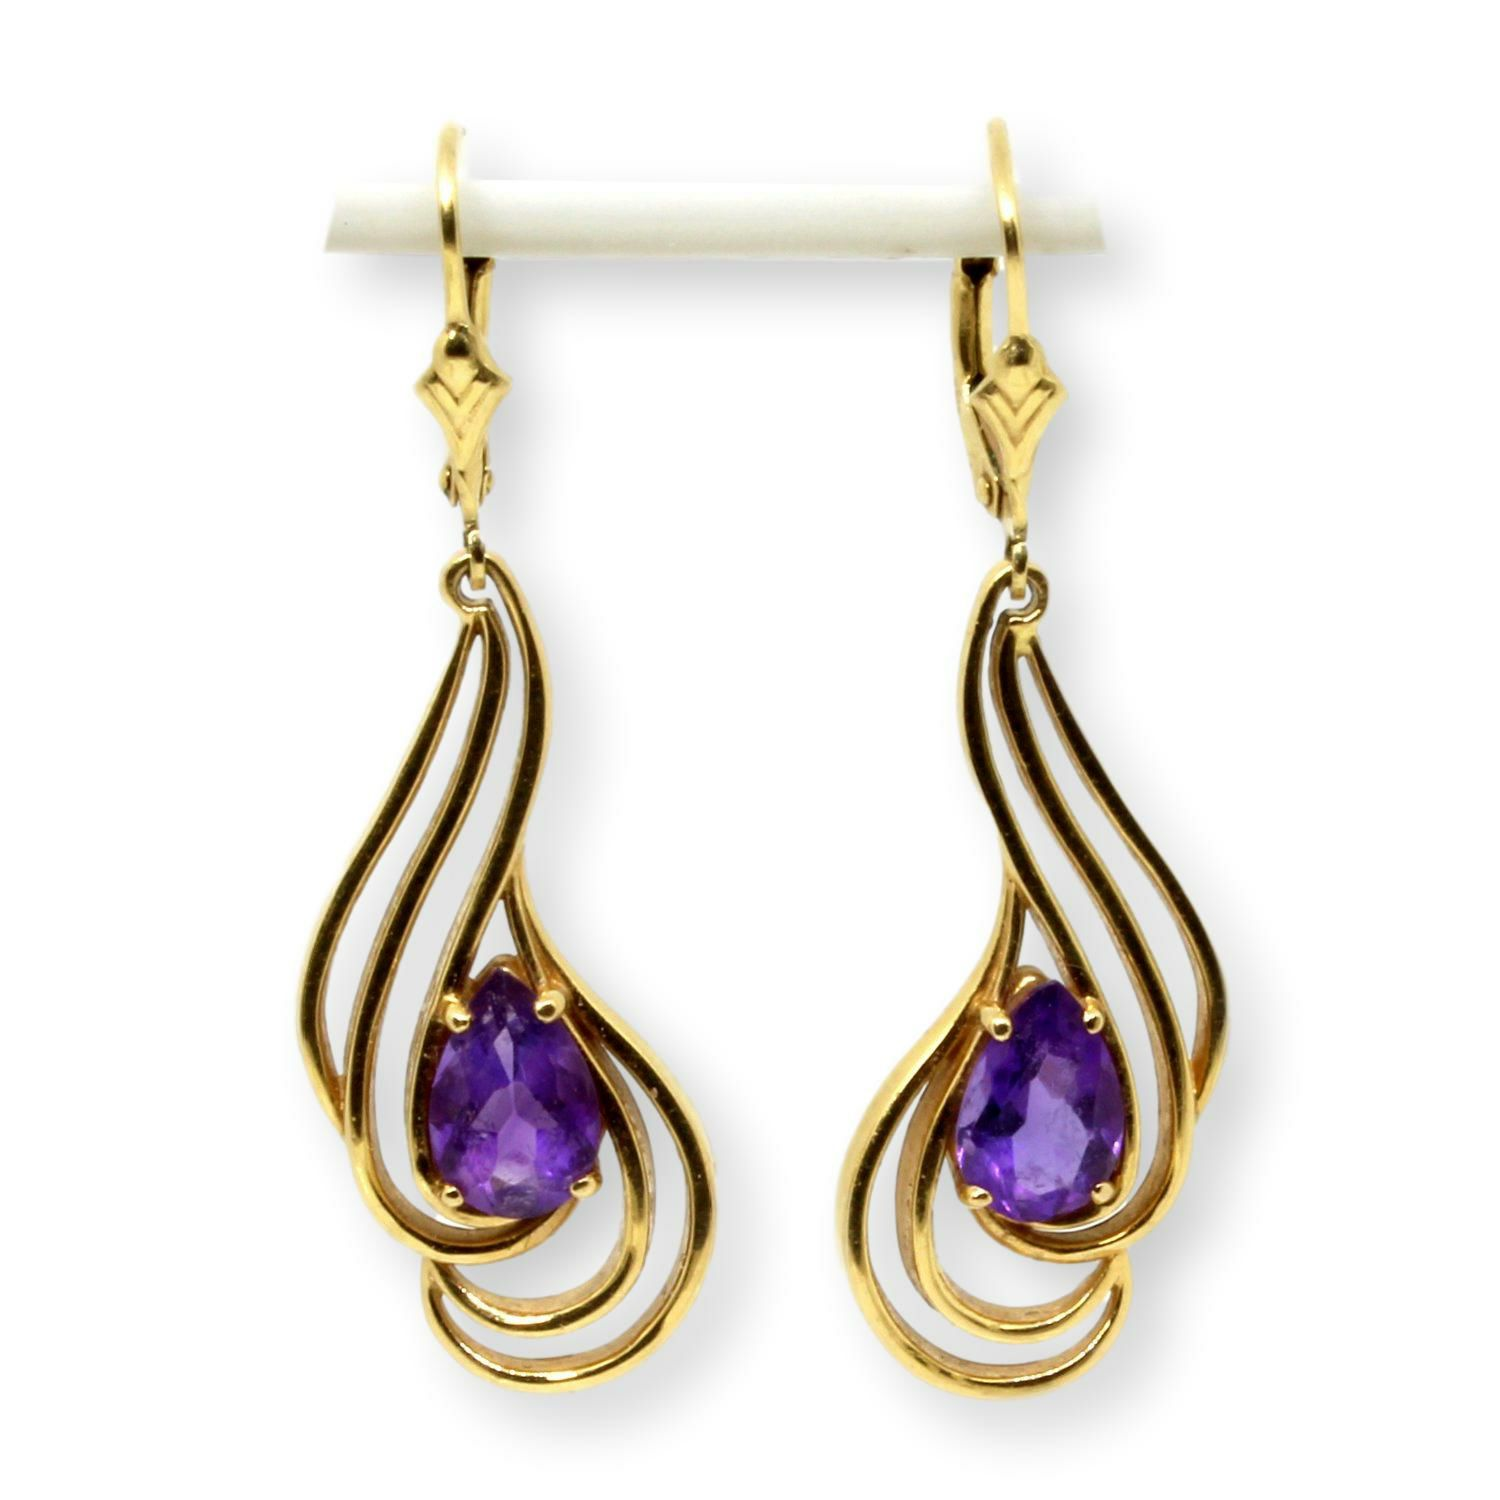 14K-Gold-2.60ctw-Amethyst-Dangle-Earrings_87152A.jpg